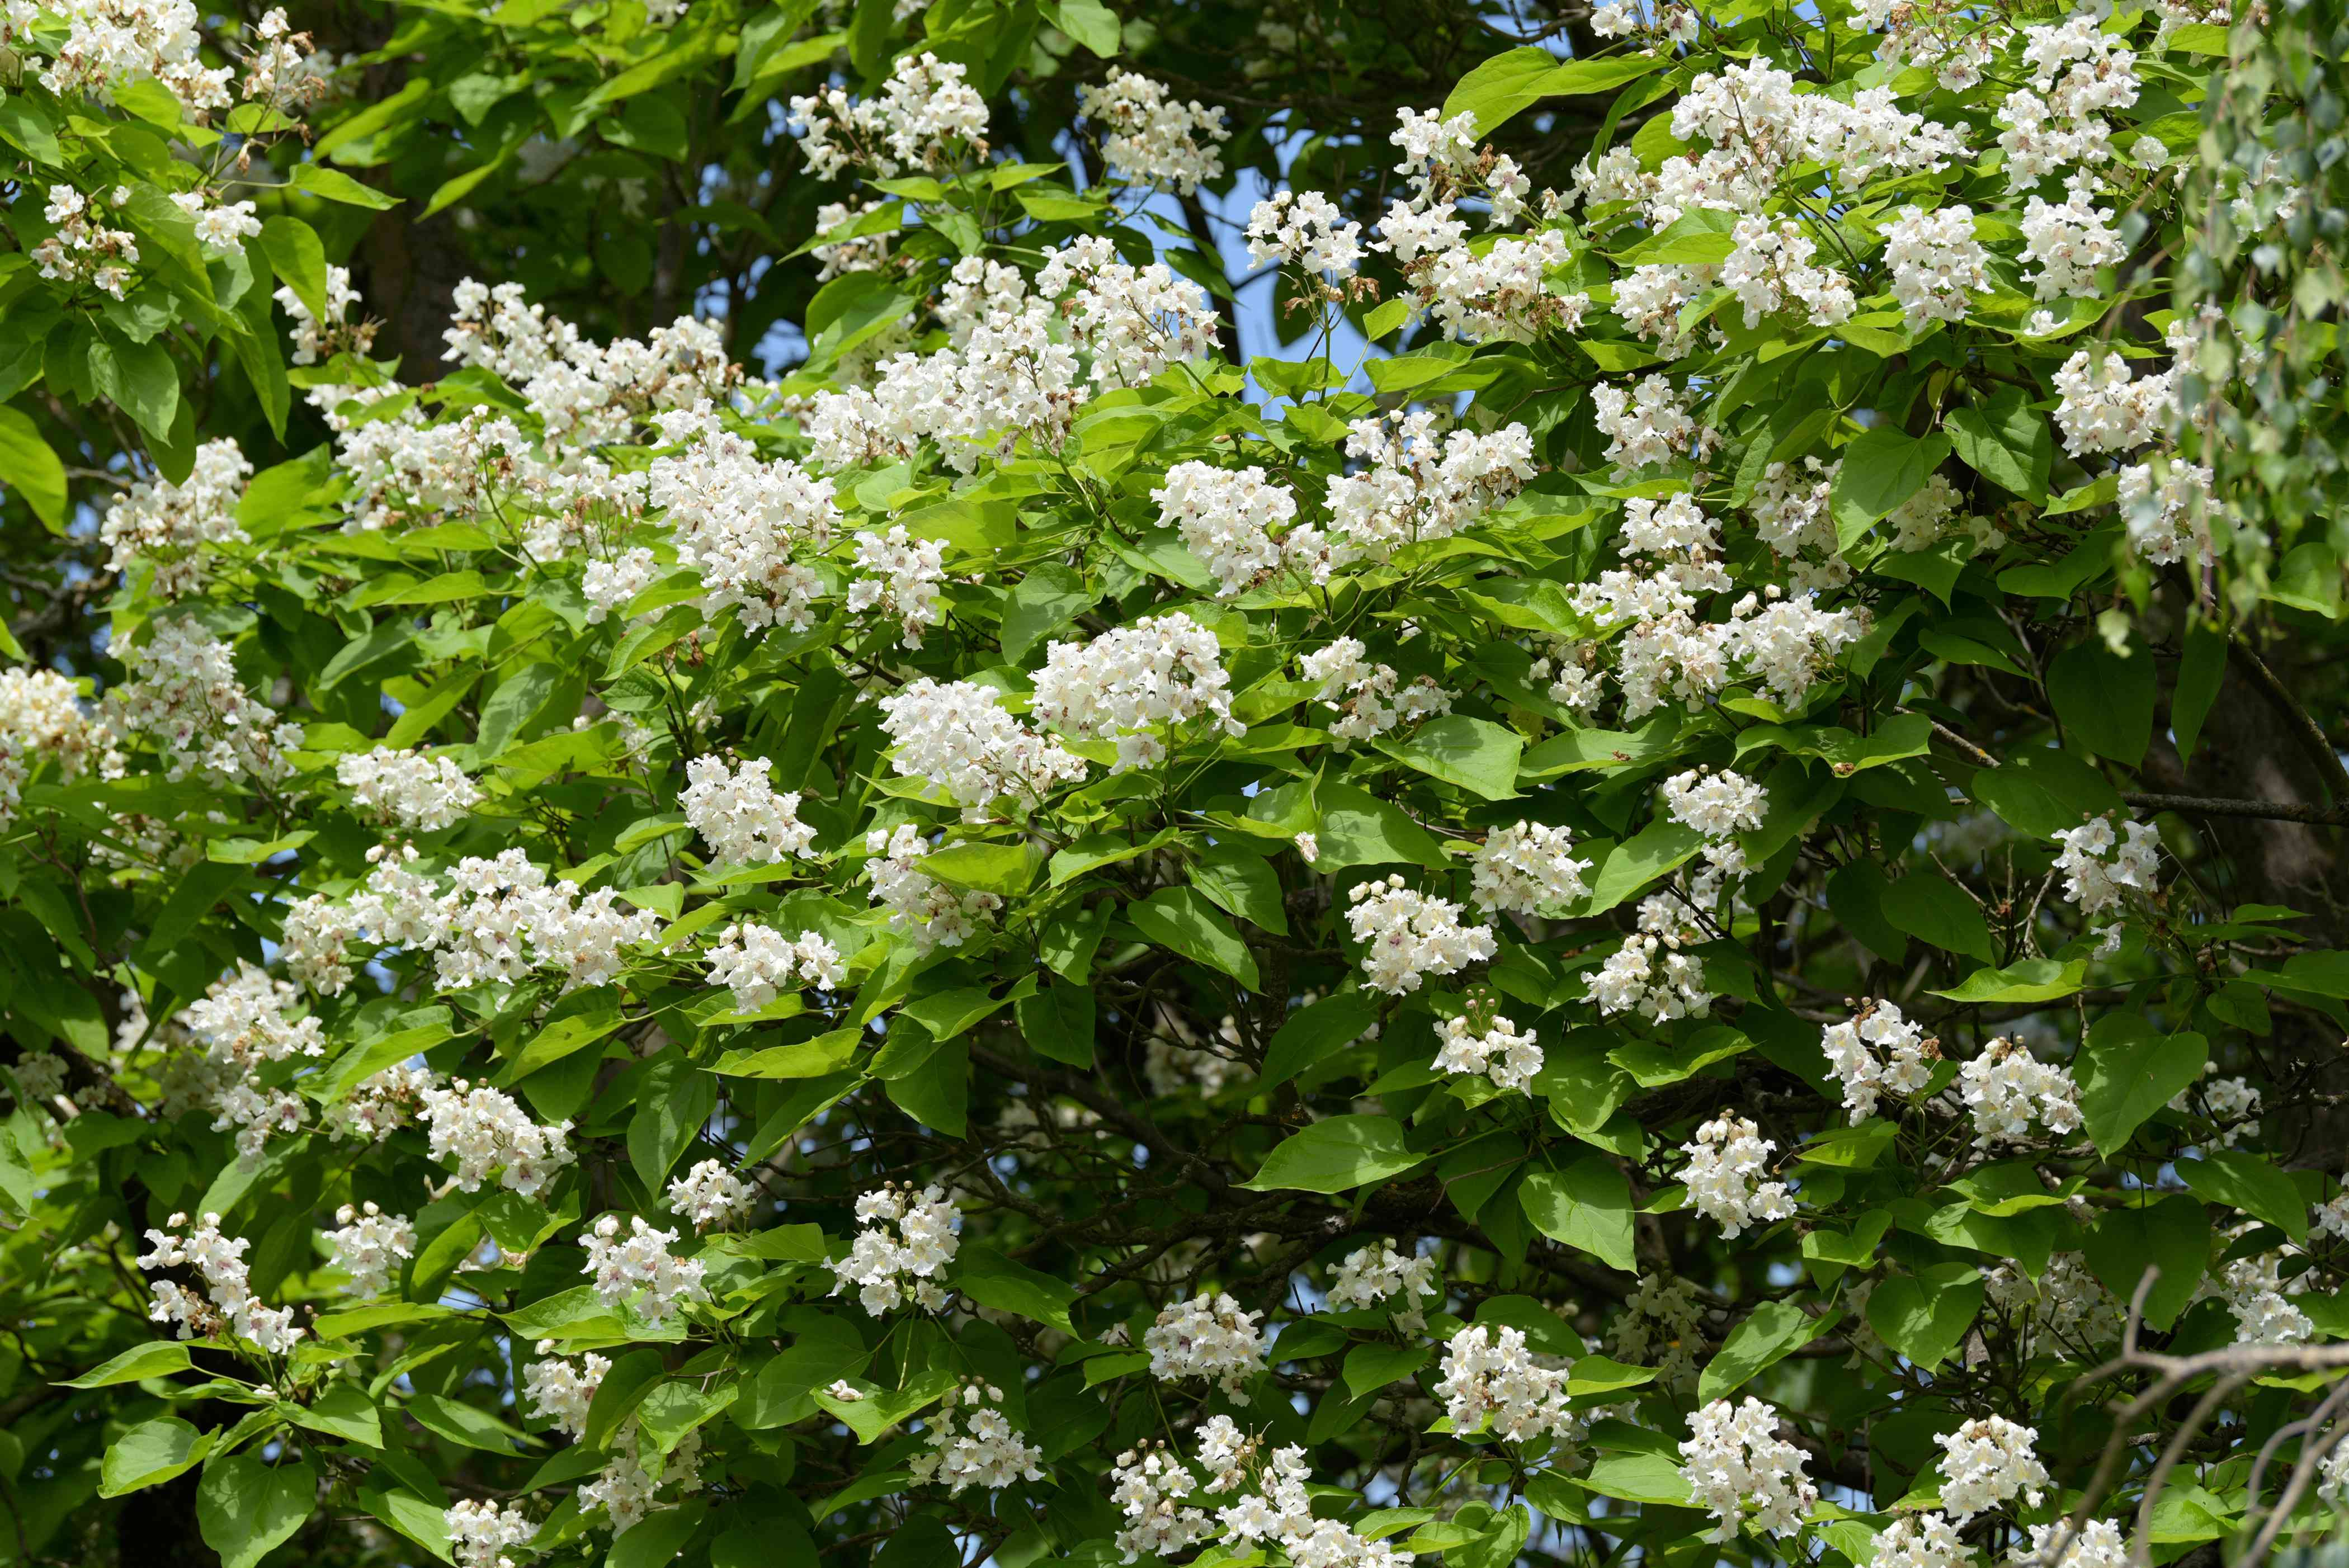 Catalpa tree branches with creamy white blossoms surrounded by green leaves in sunlight